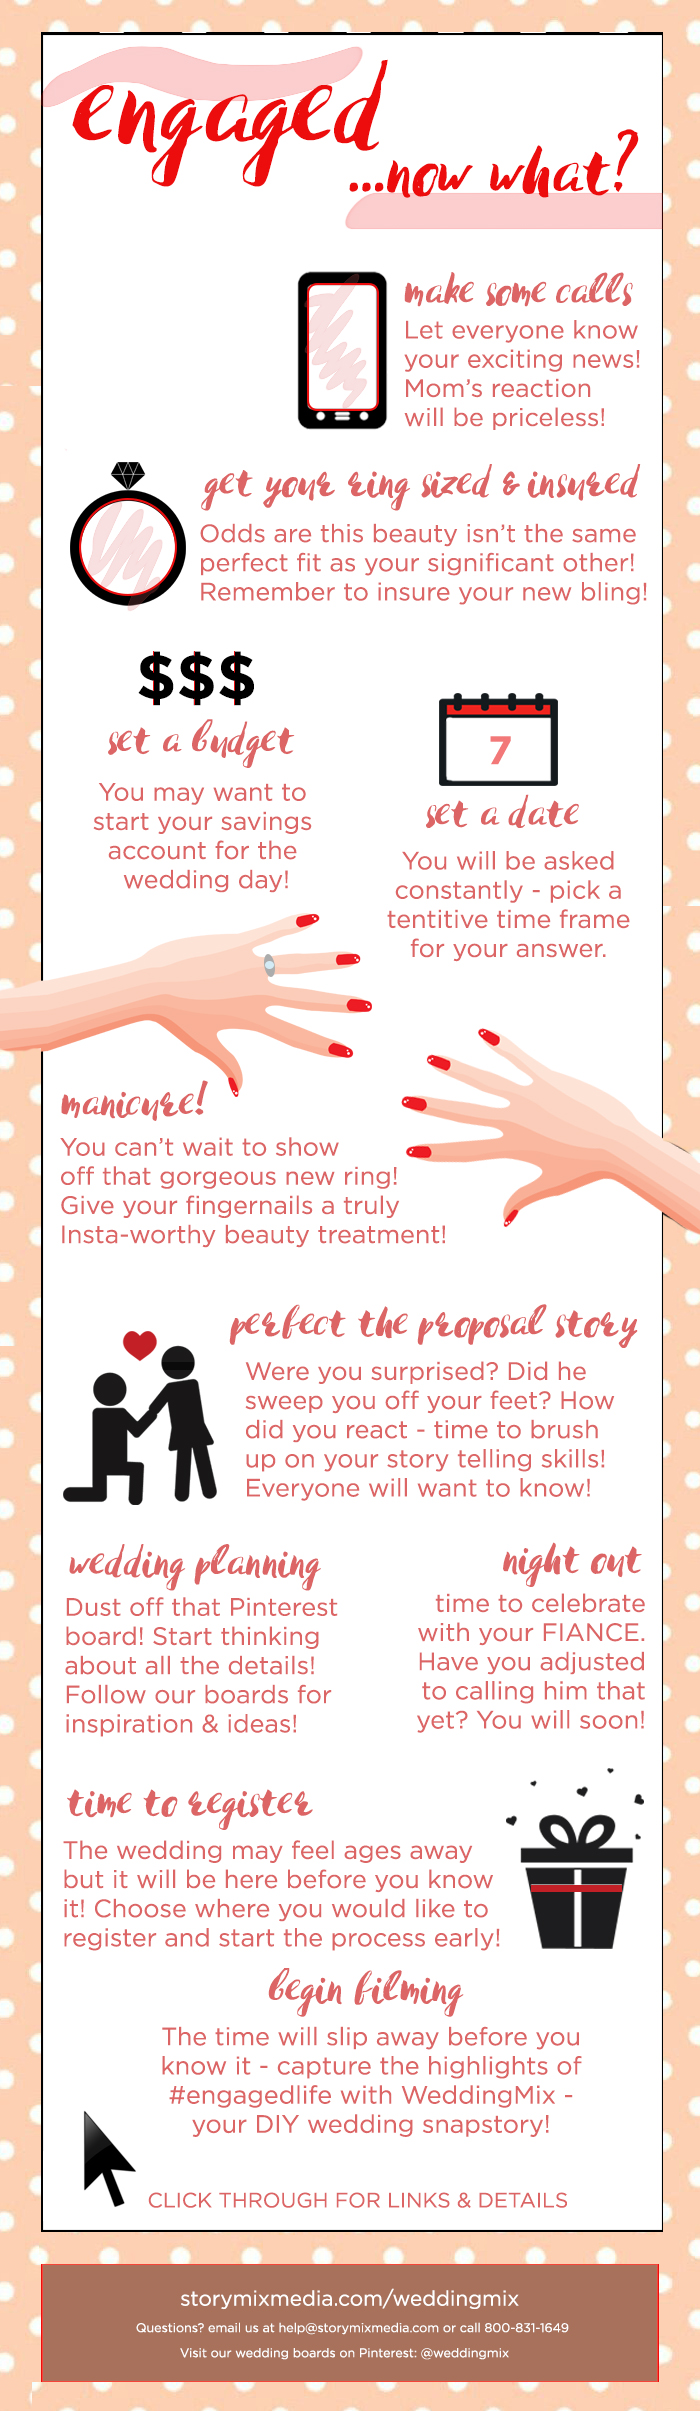 just engaged infographic